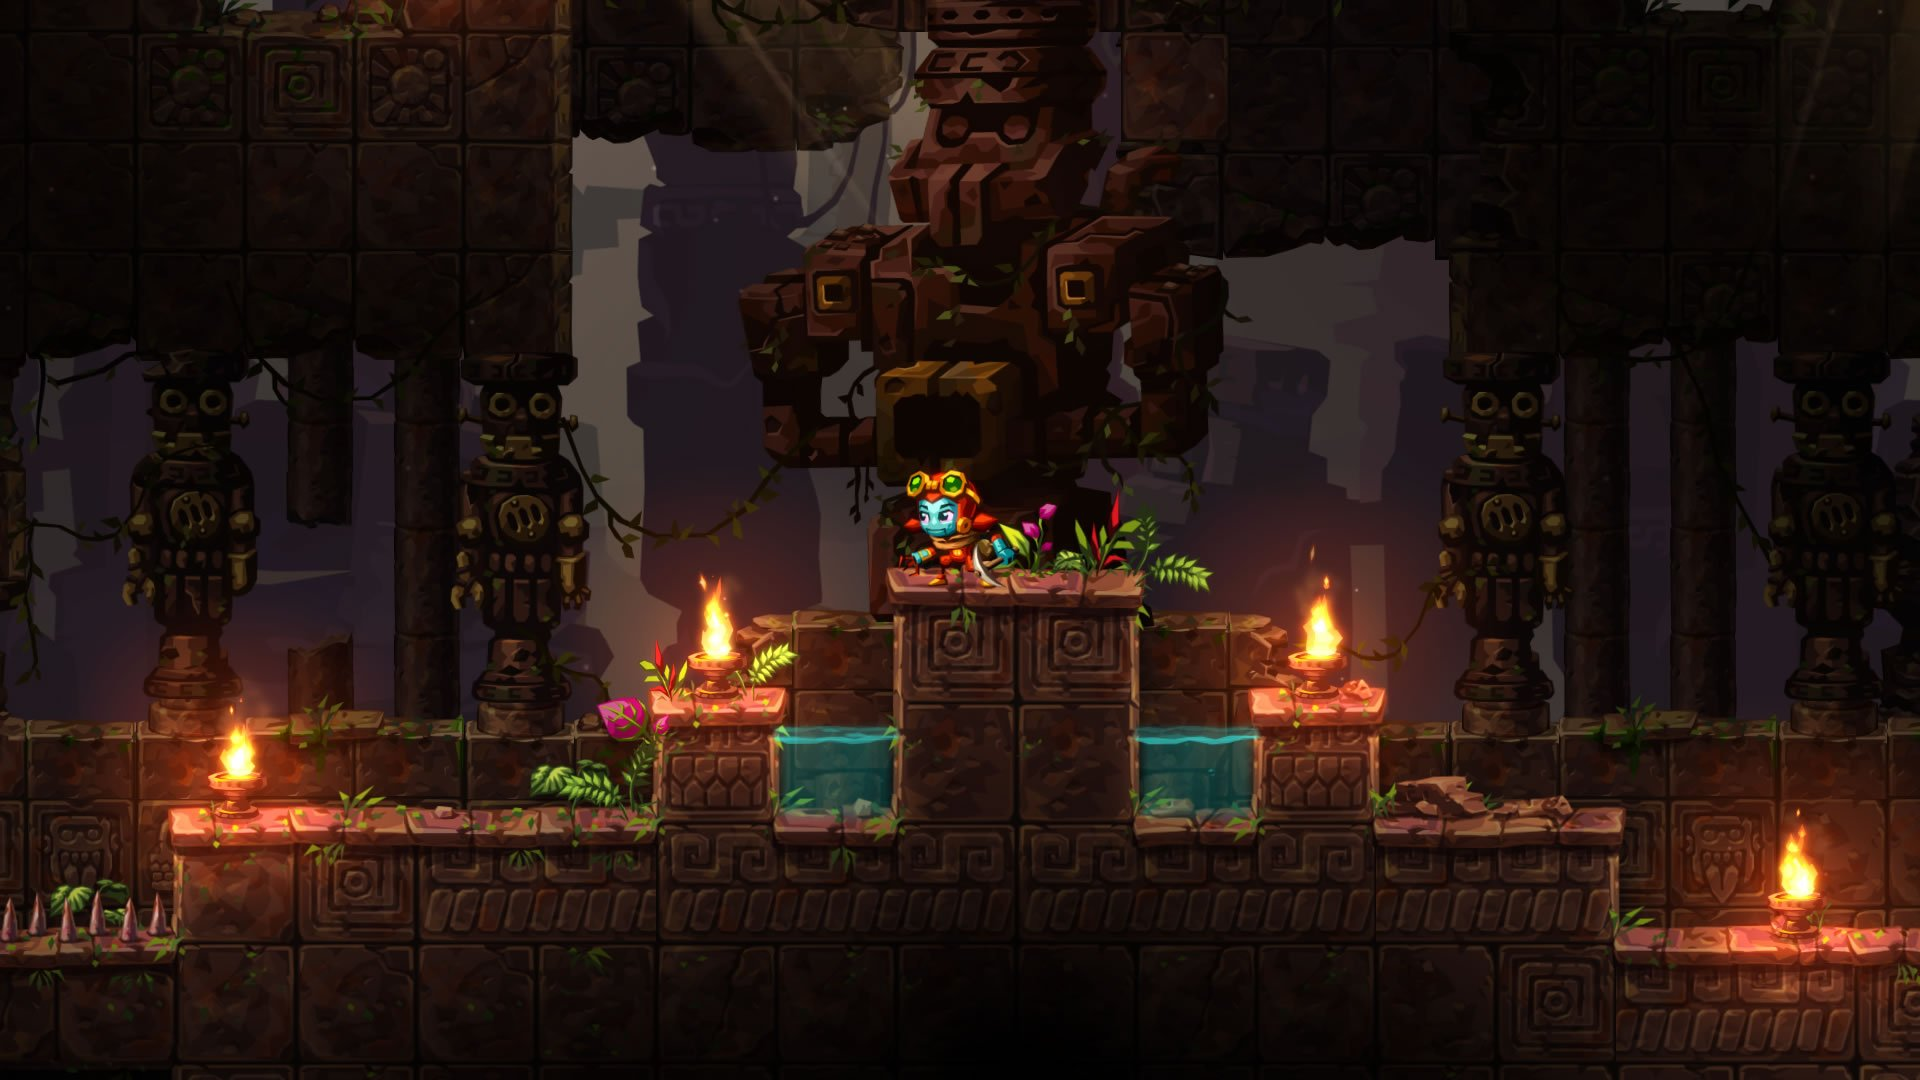 Modojo | Steamworld Dig 2 Coming To Nintendo Switch Next Month